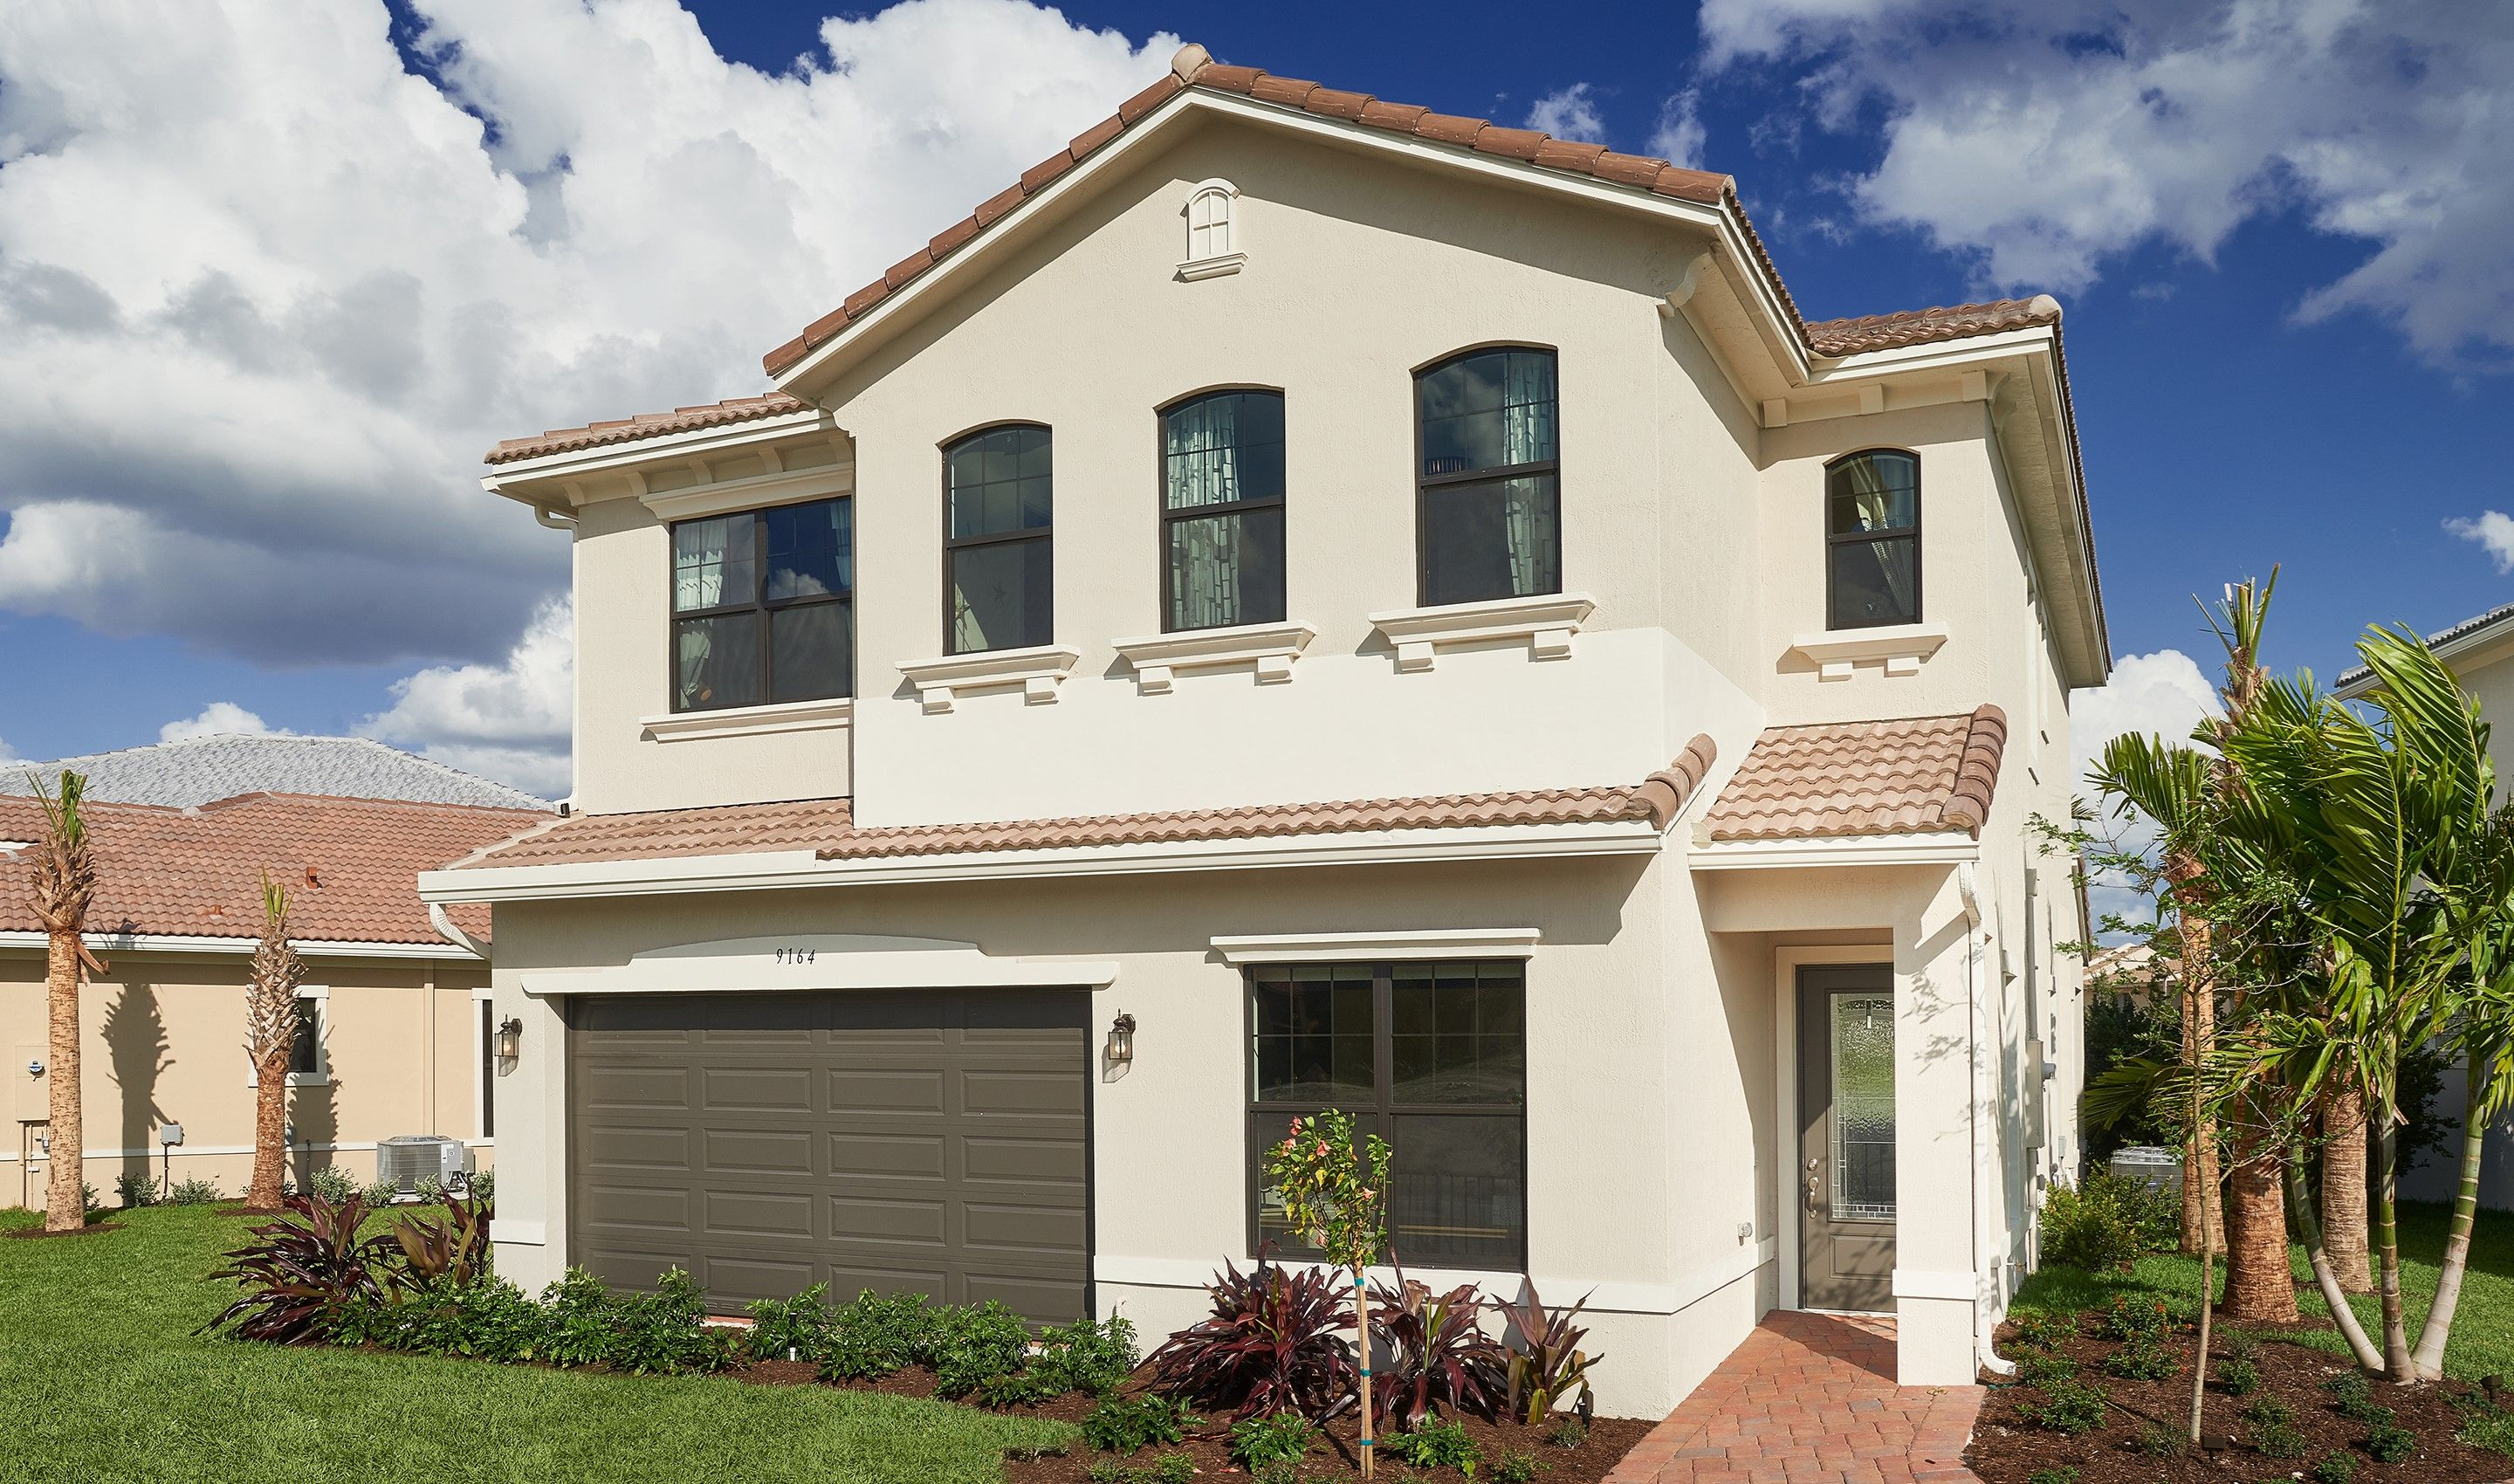 Single Family for Active at Vitale 8963 Nw 39th Street, Homesite 160 Coral Springs, Florida 33065 United States